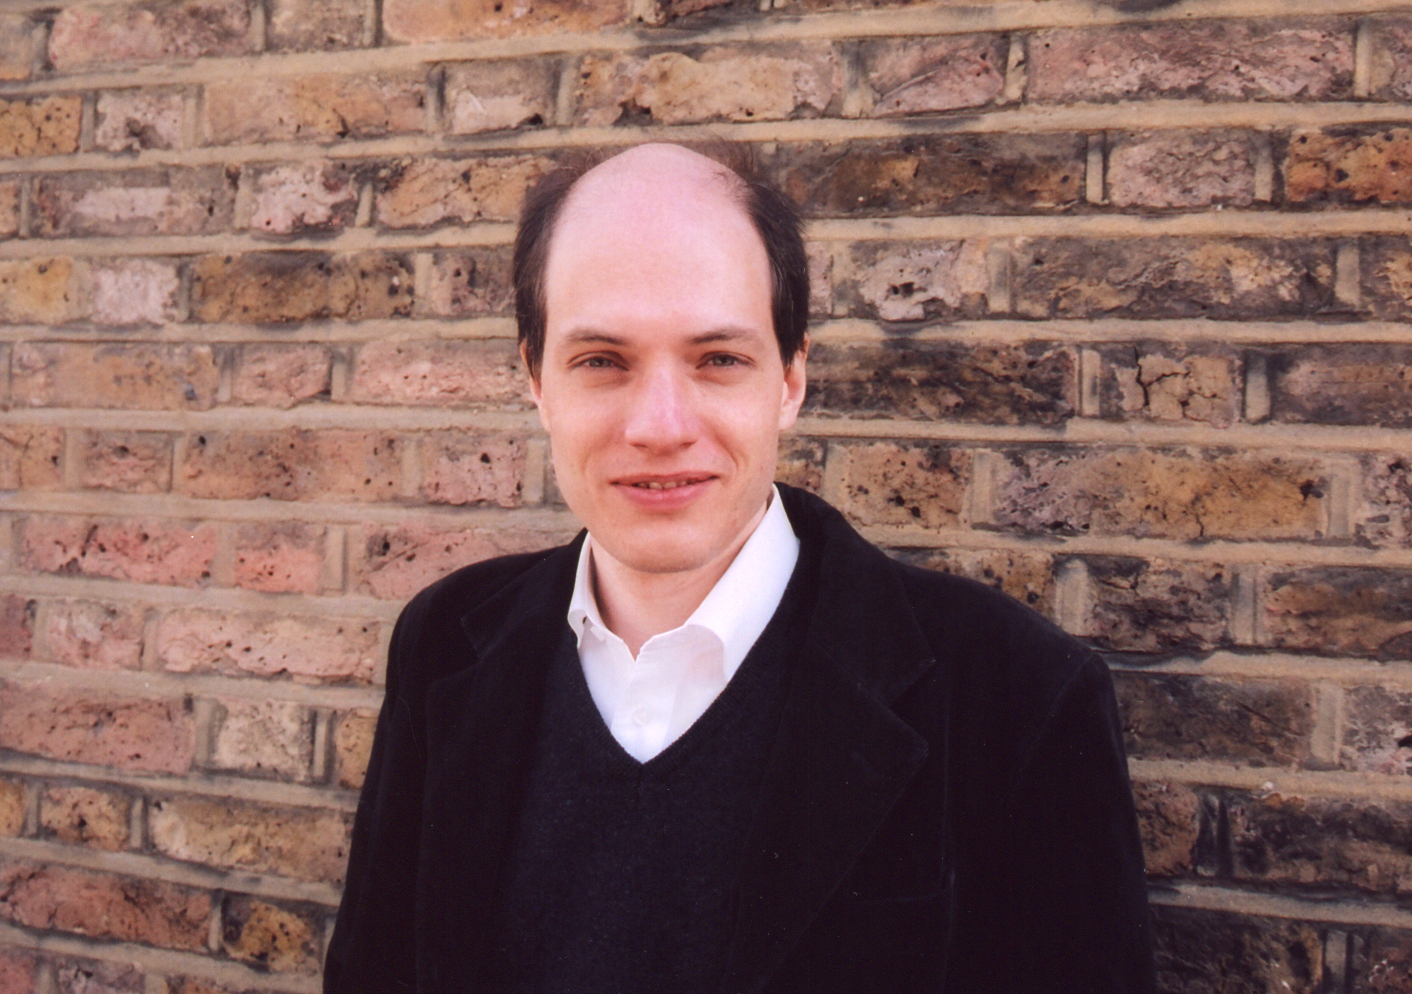 Alain de Botton: Atheism 2.0